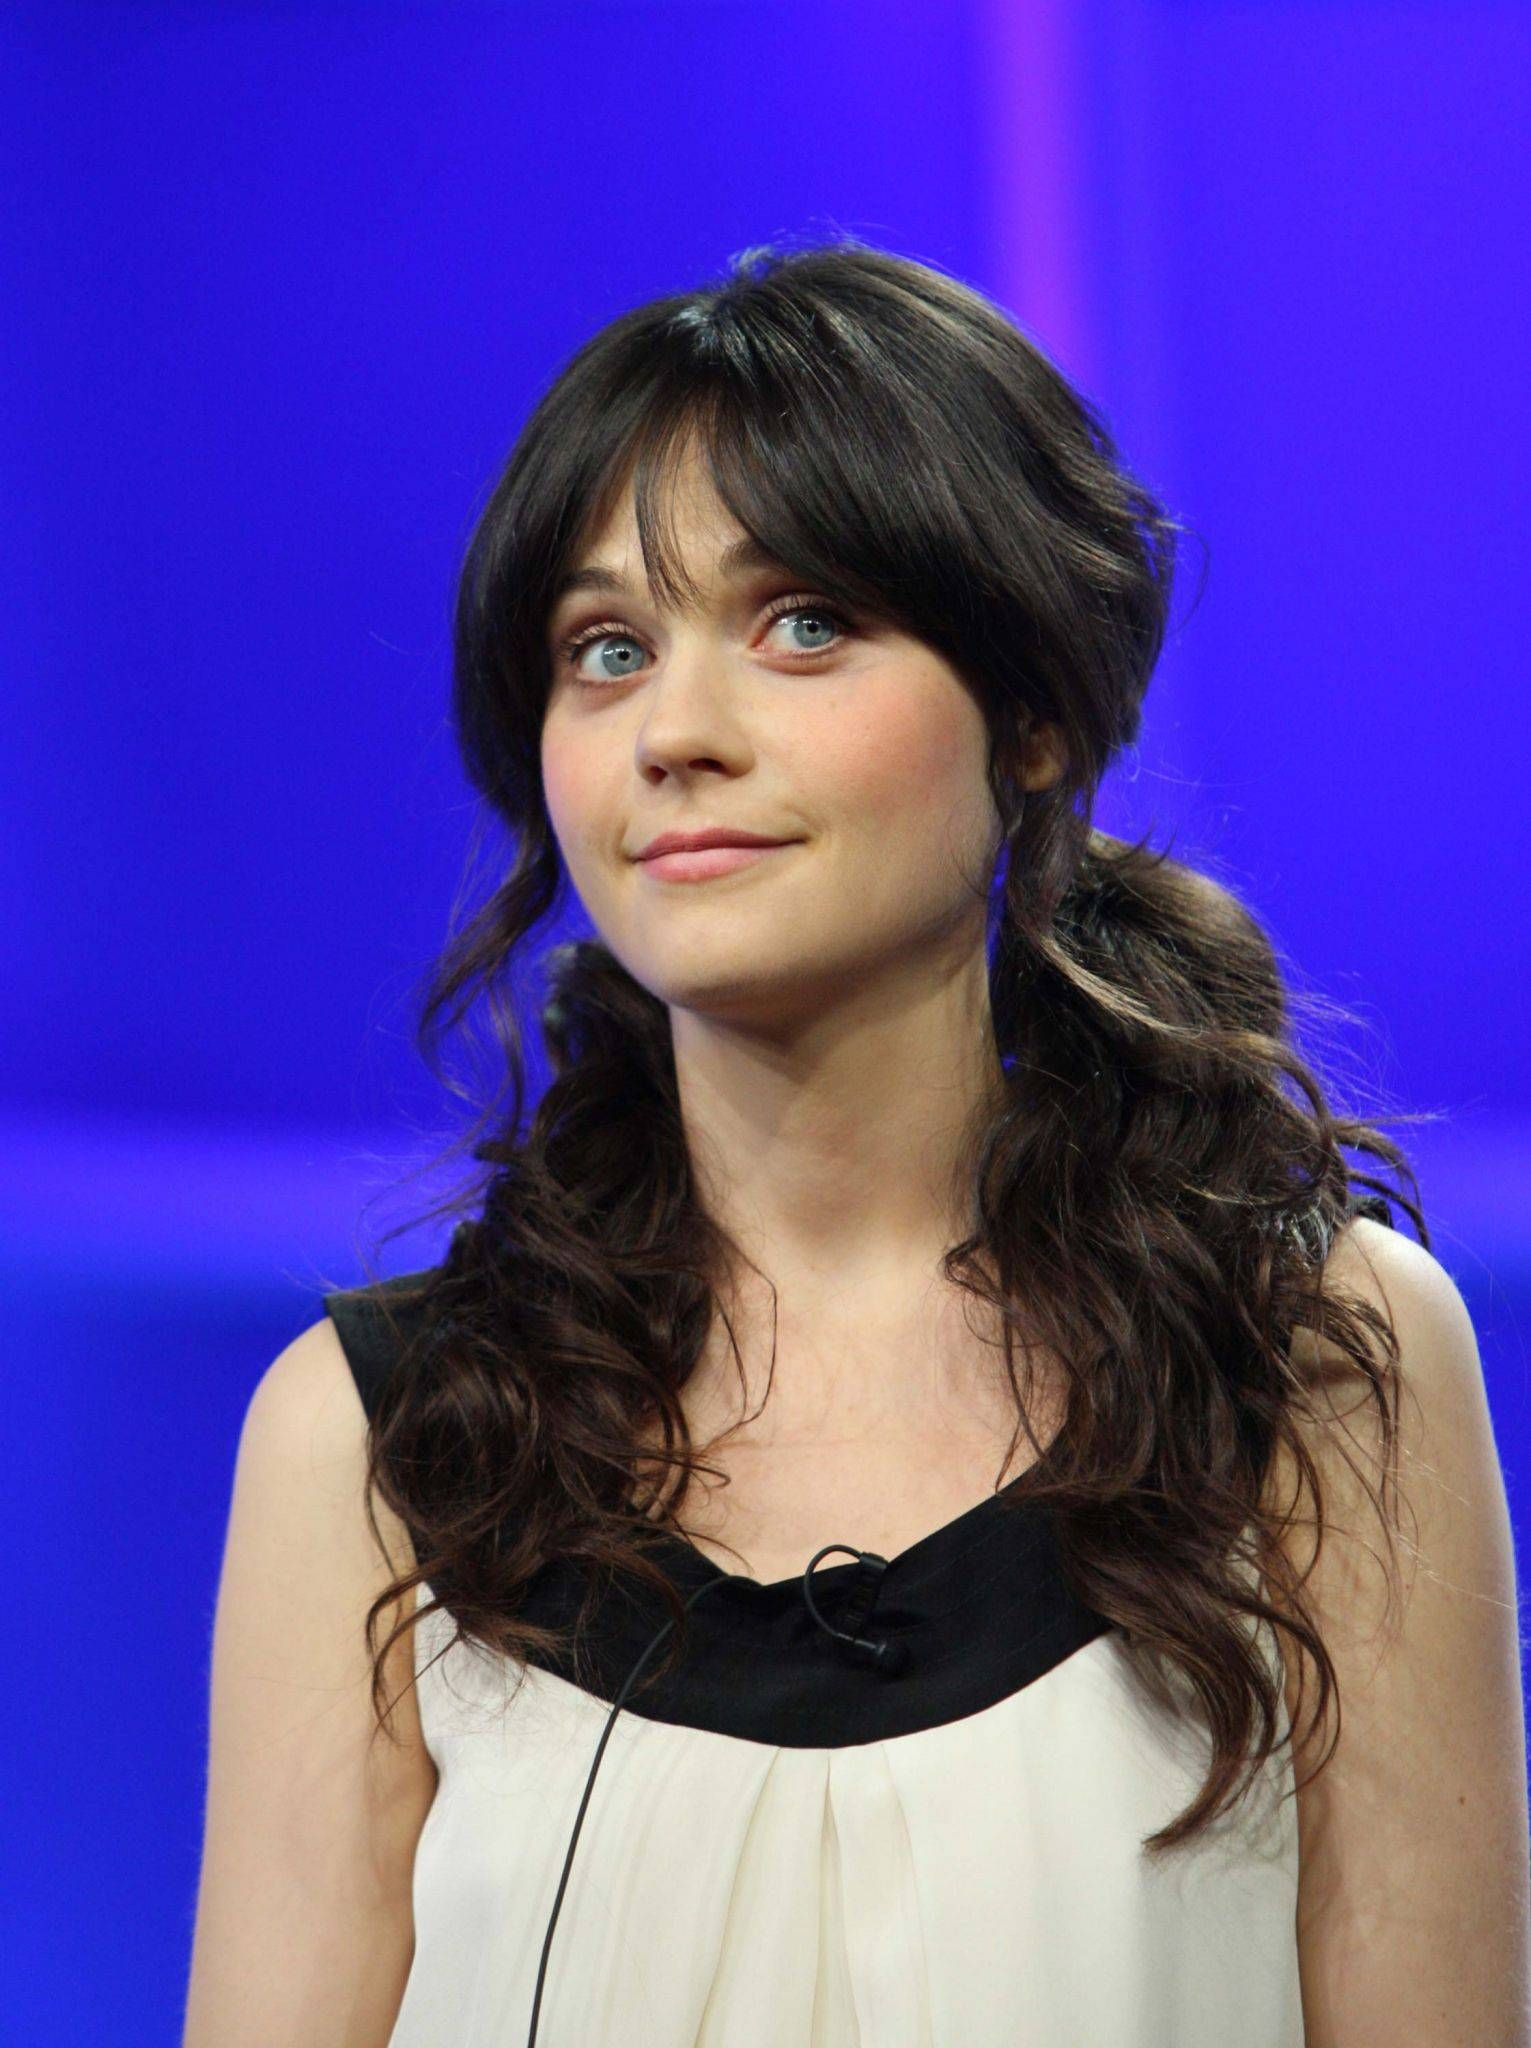 Zooey Claire Deschanel is an American actress, musician born on January 17, 1980 made her film debut in Mumford, followed by her breakout role as Anita Miller in Cameron Crowe's 2000 semi-autobiogr...